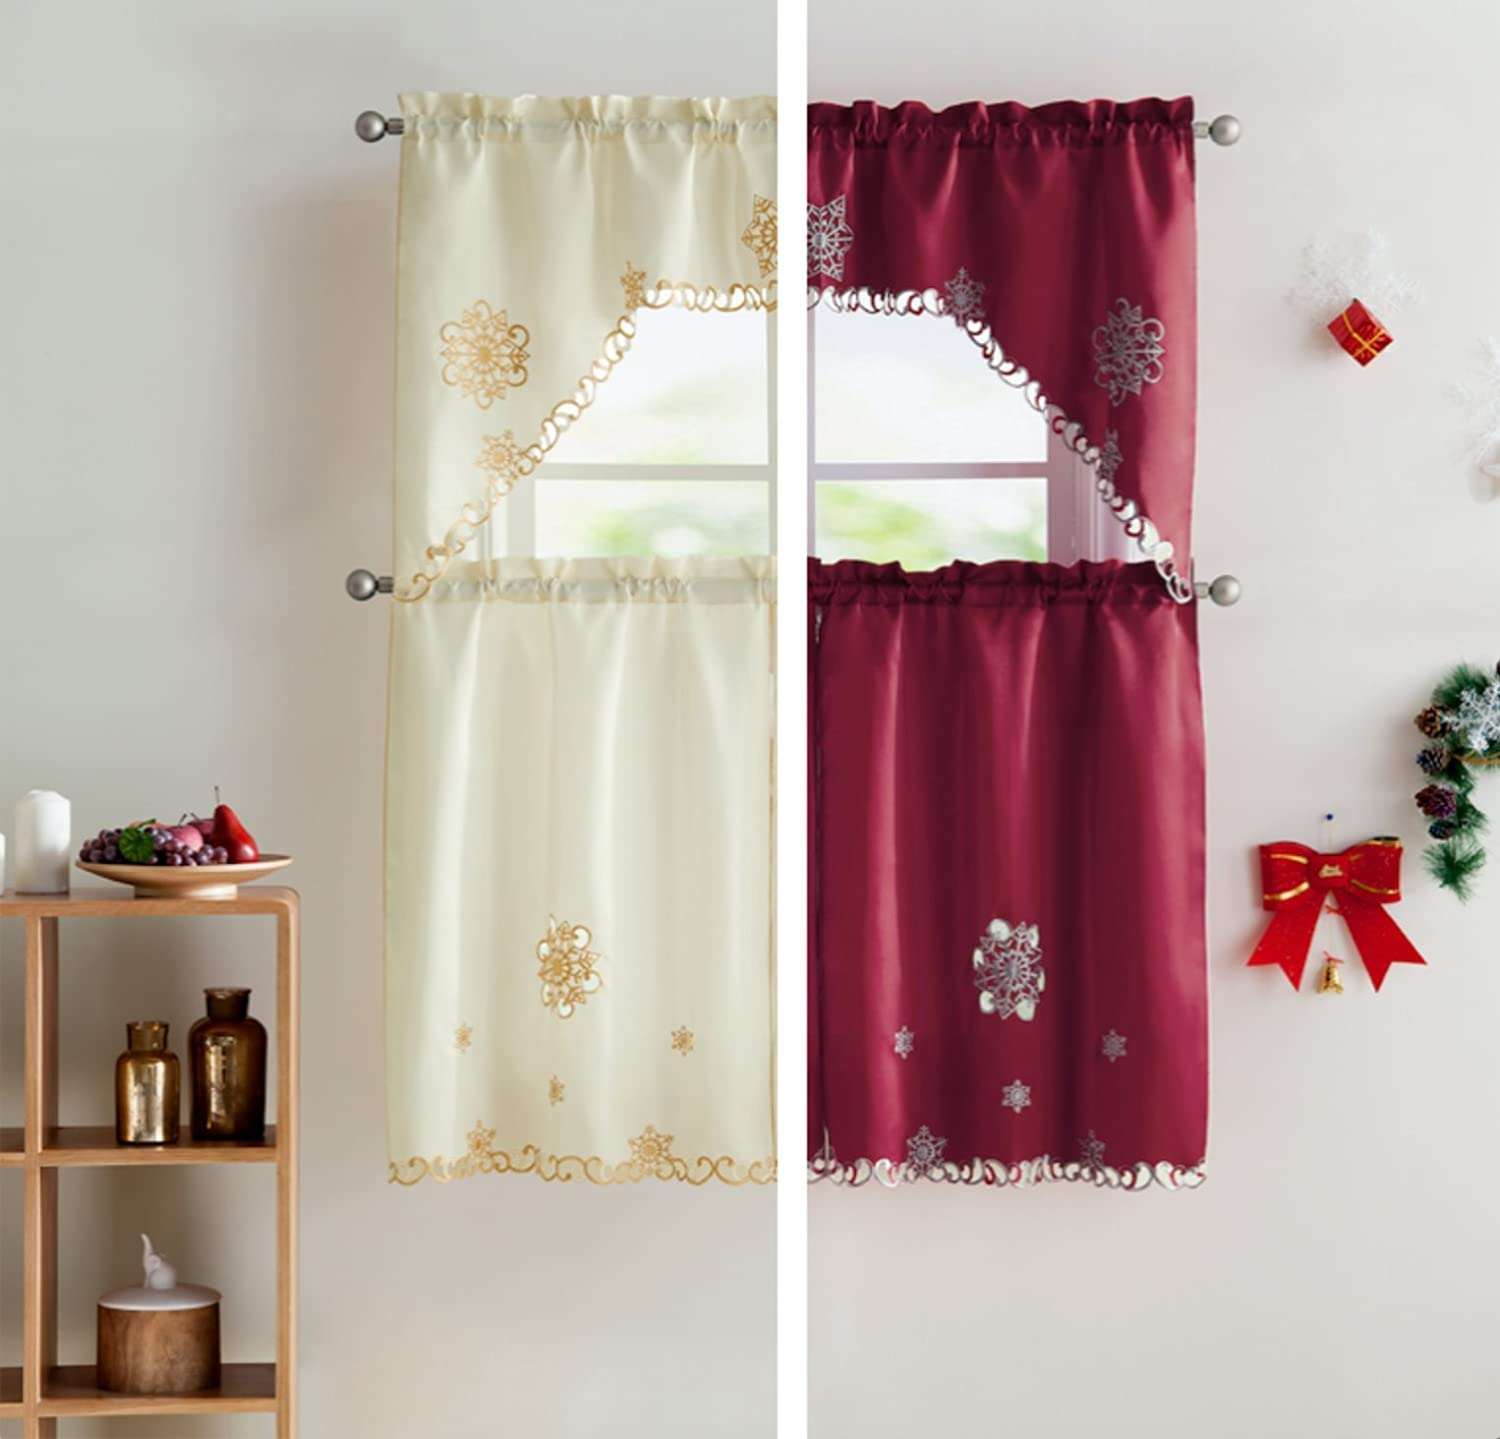 VCNY Home Starburst Christmas Kitchen Curtain Tier & Swag Set - Assorted Colors (Burgundy/Grey)